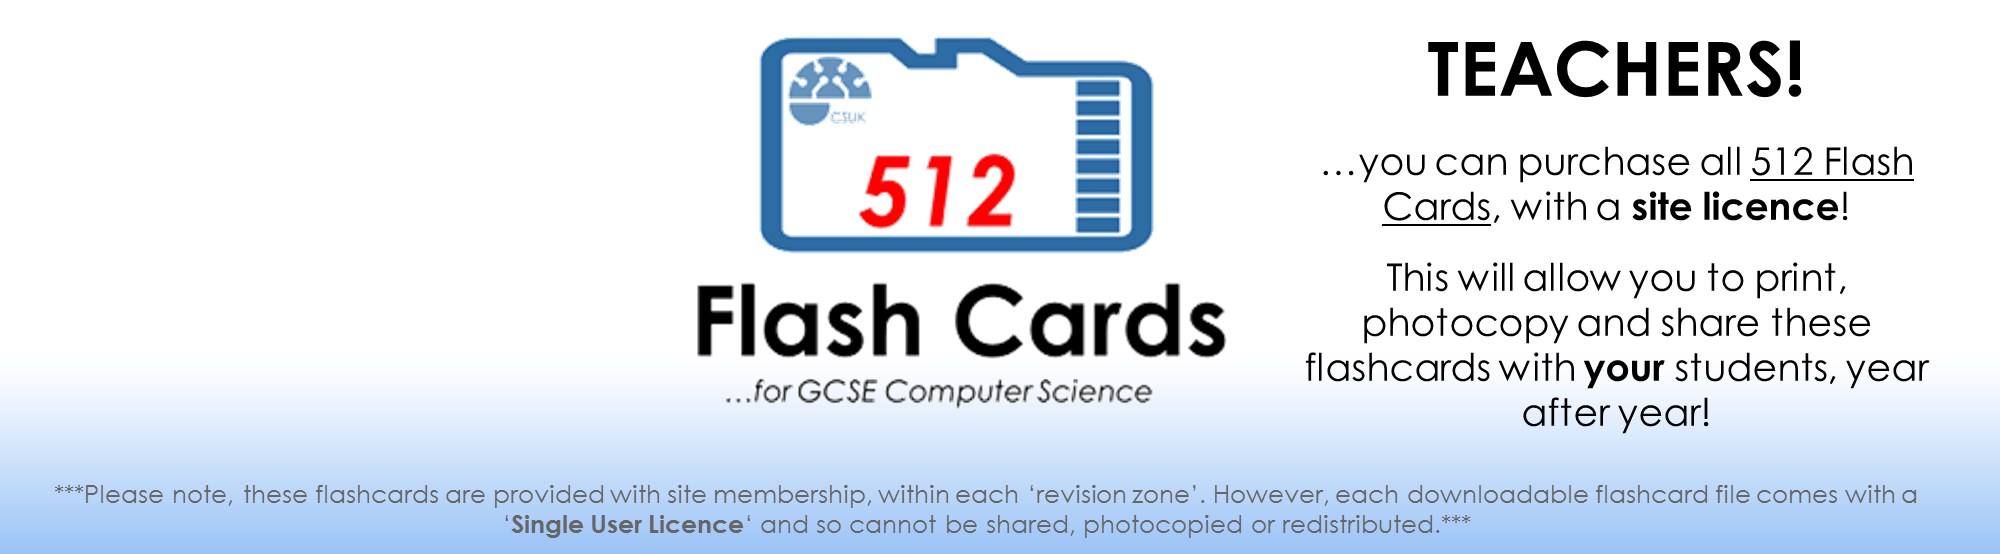 512 Flash Cards